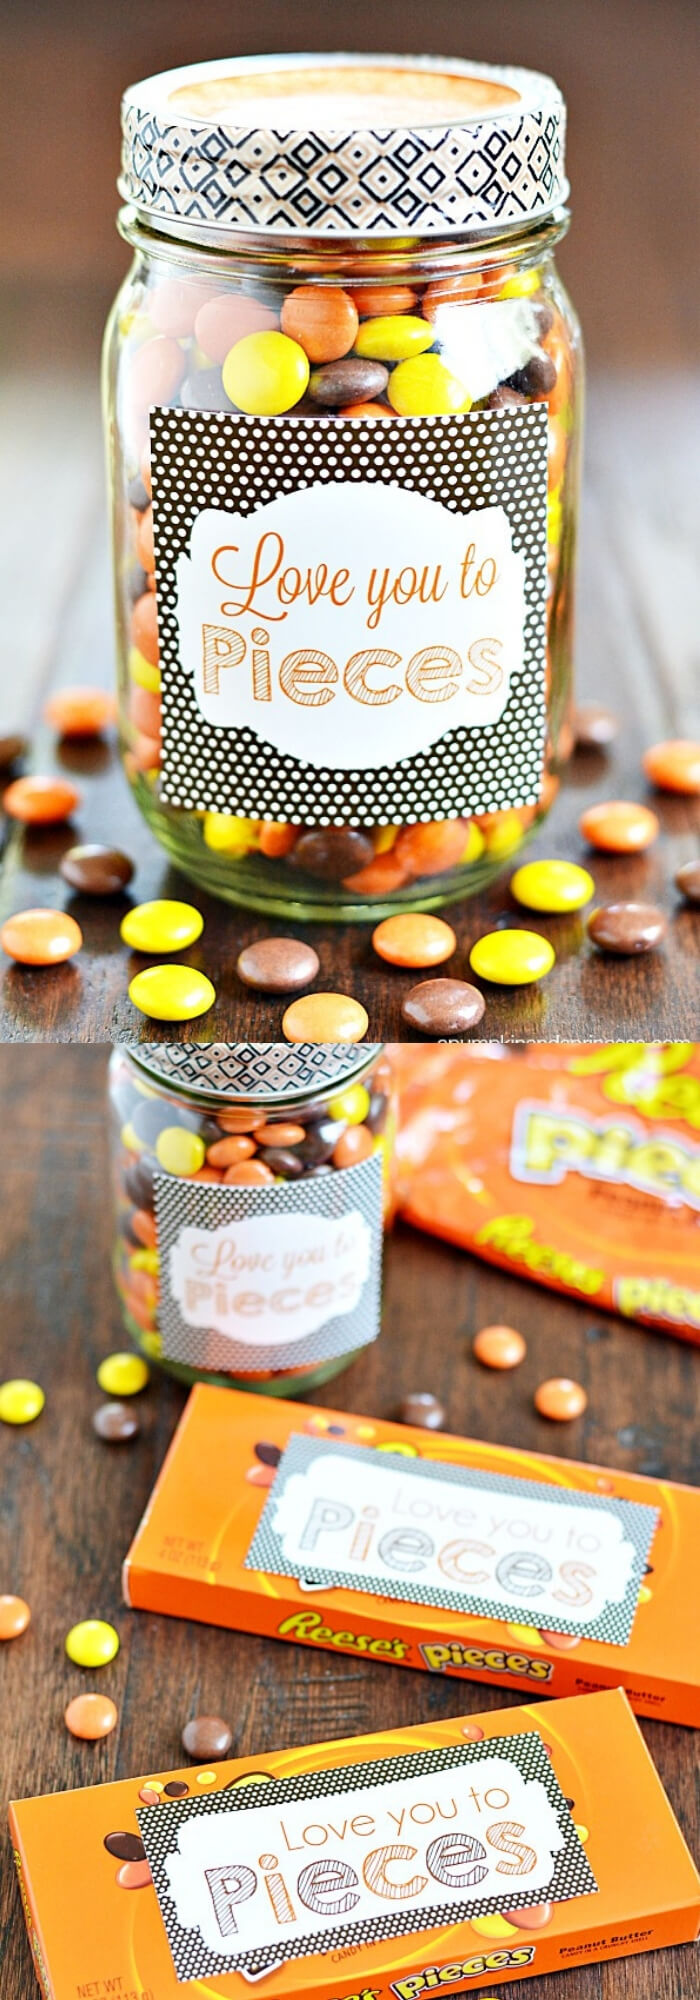 Love You To Pieces | DIY Mason Jar Gift Ideas For Valentine's Day | FarmFoodFamily.com